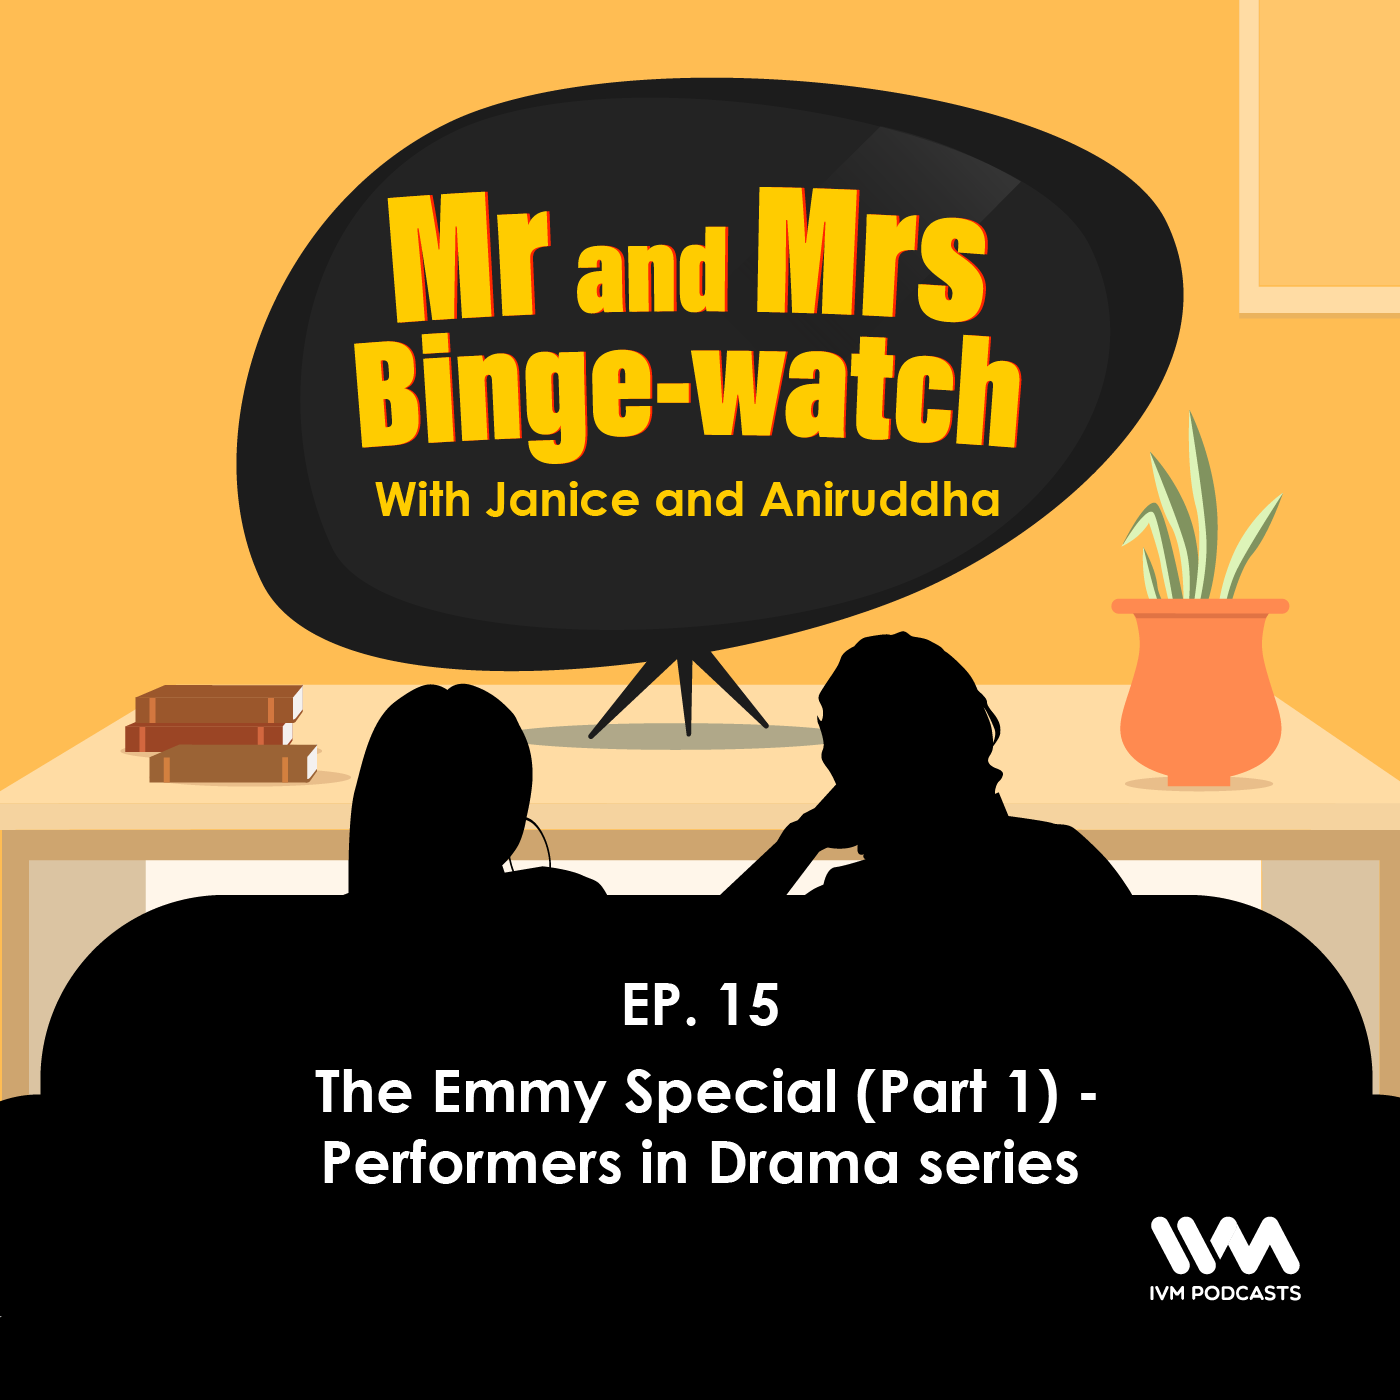 Ep. 15: The Emmy Special (Part 1) - Performers in Drama series